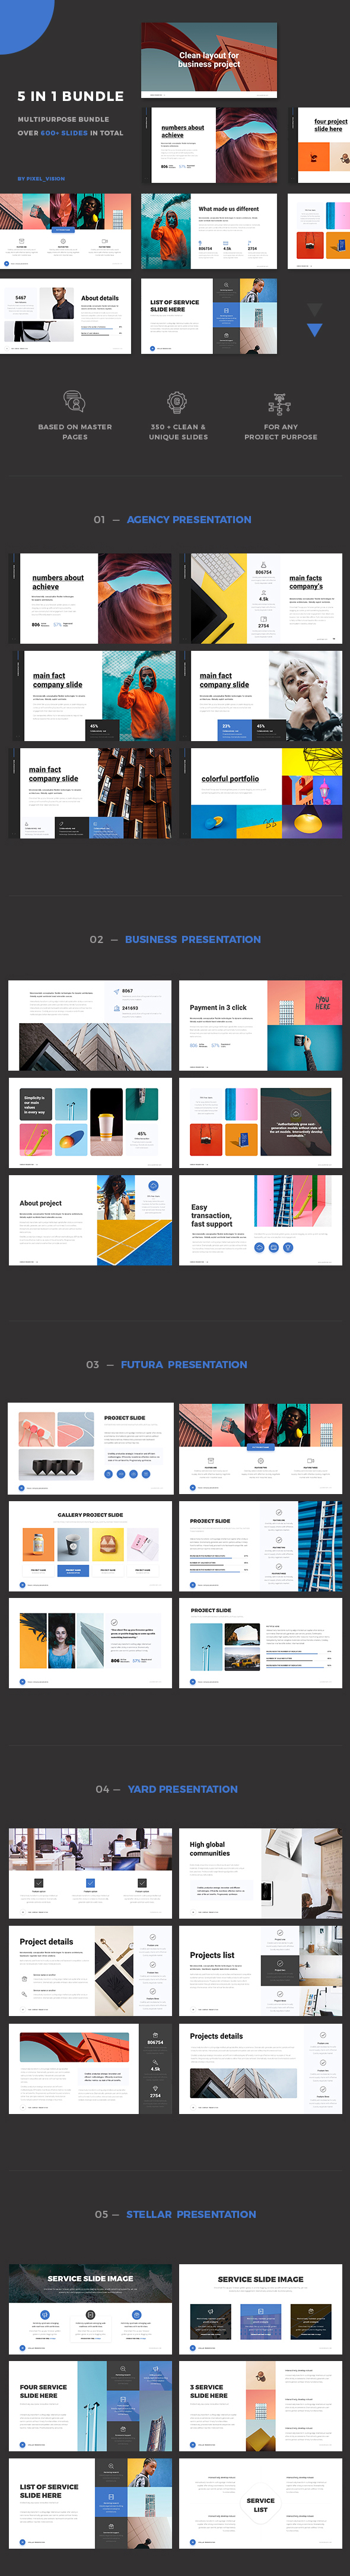 Business Bundle 5 in 1 - PowerPoint Templates Presentation Templates